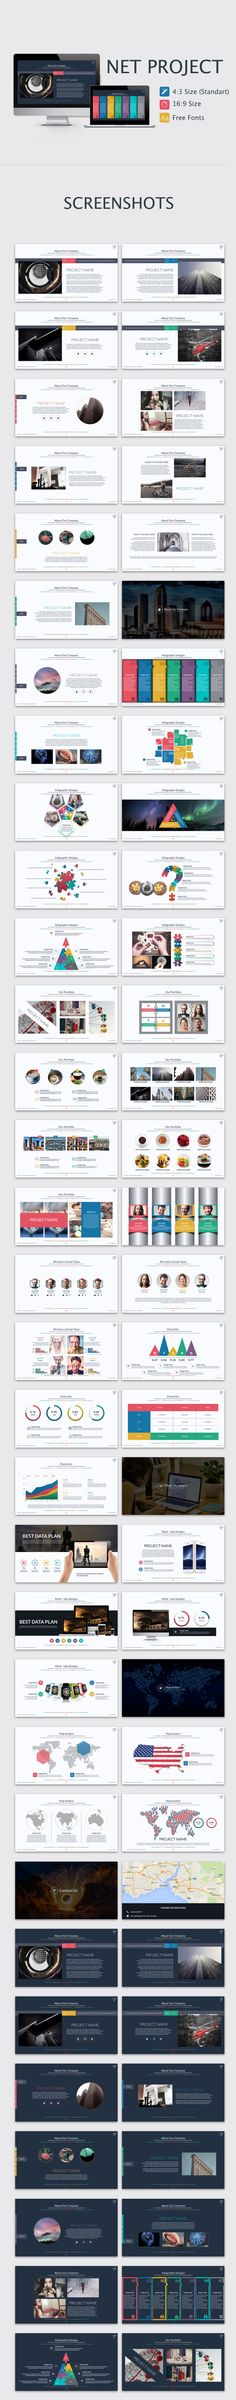 Net Powerpoint Template. Download here: http://graphicriver.net/item/net-powerpoint-template/15757330?ref=ksioks